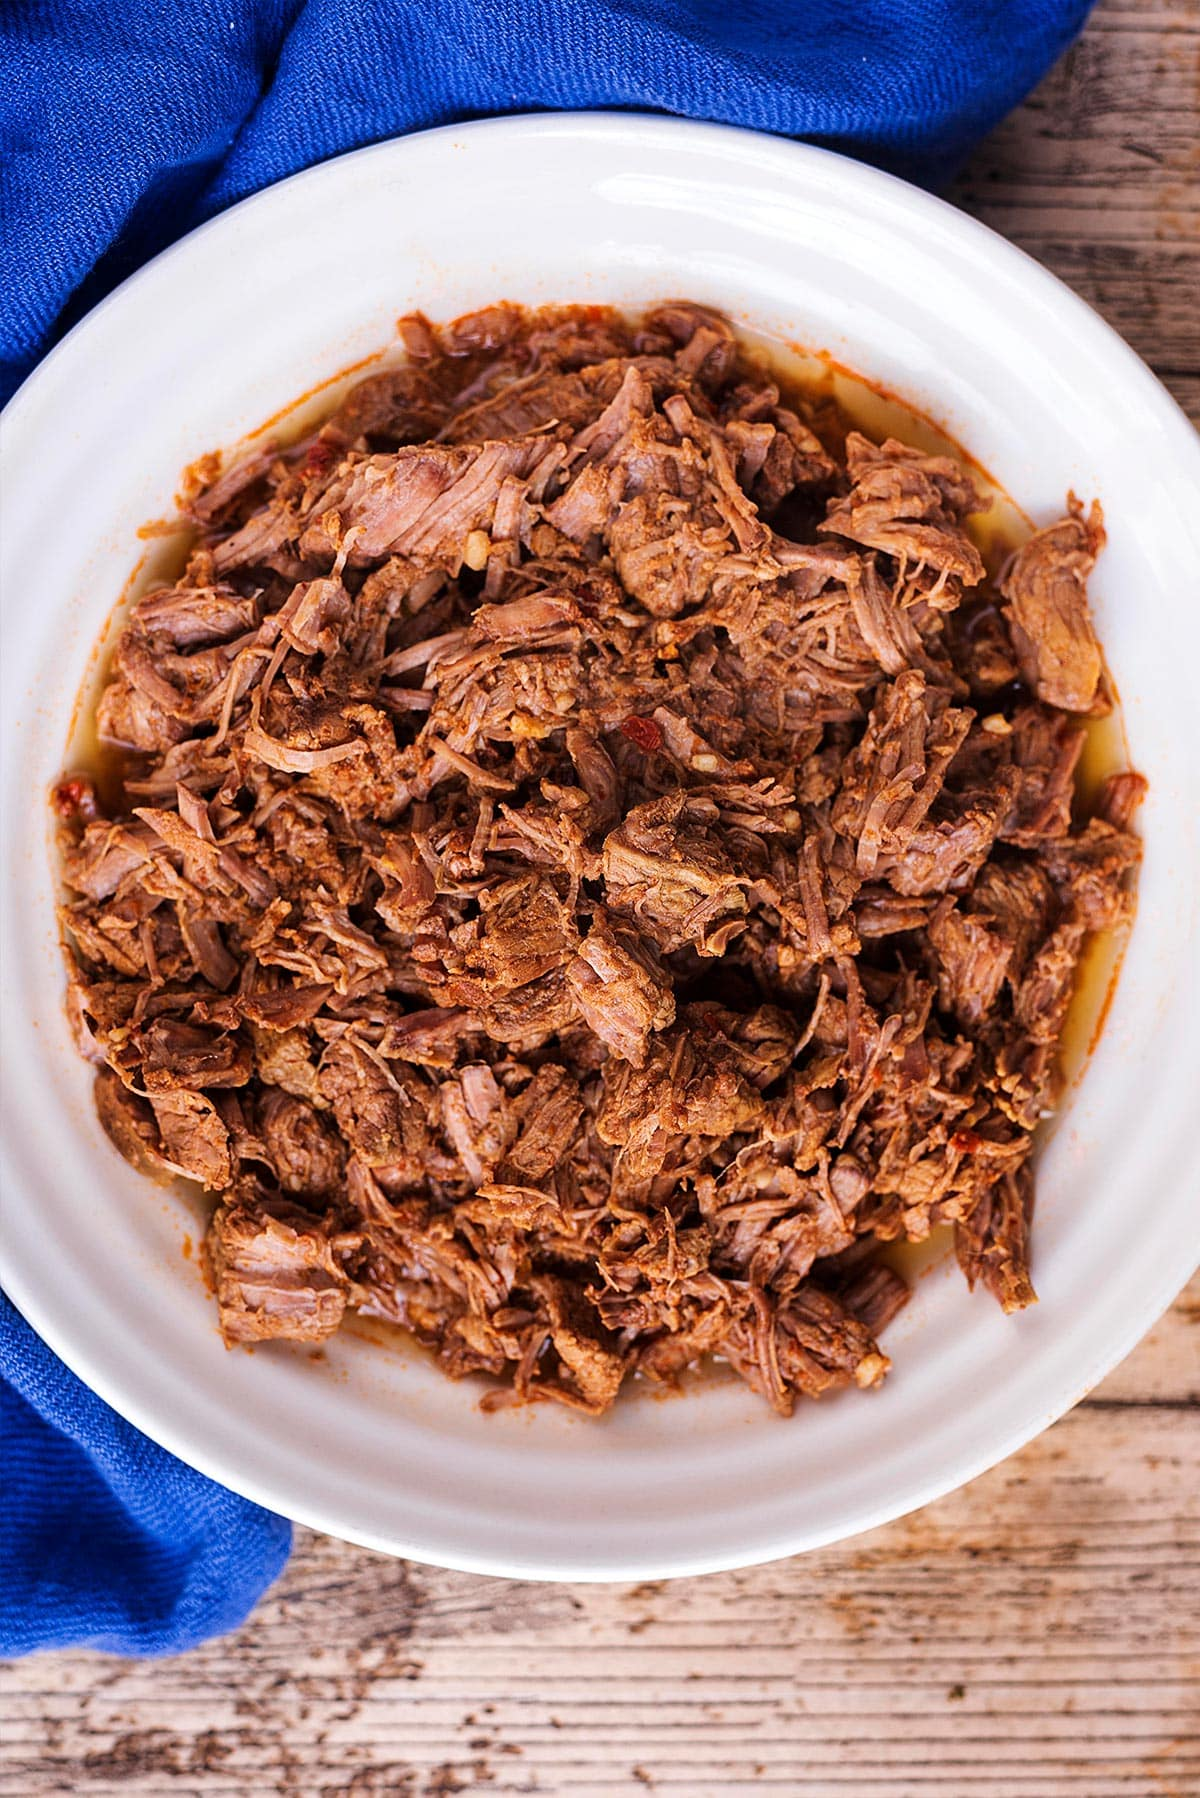 A bowl of pulled beef next to a blue towel